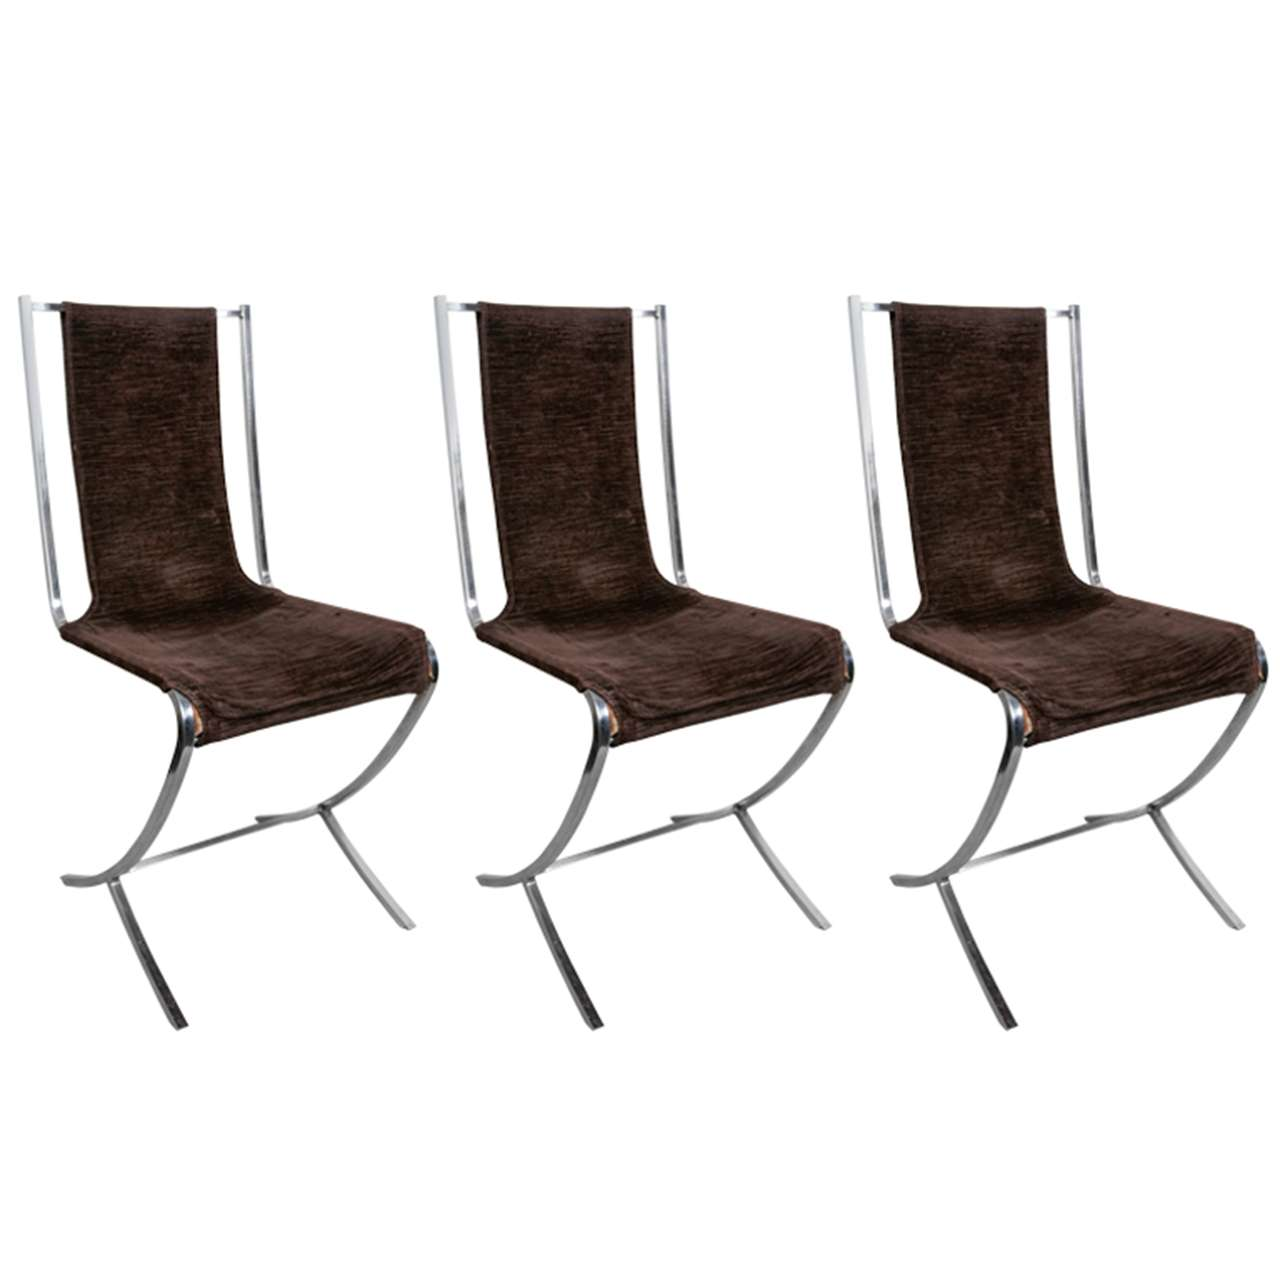 Ten Chromed Steel Chairs By Maison Jansen 1970s For Sale